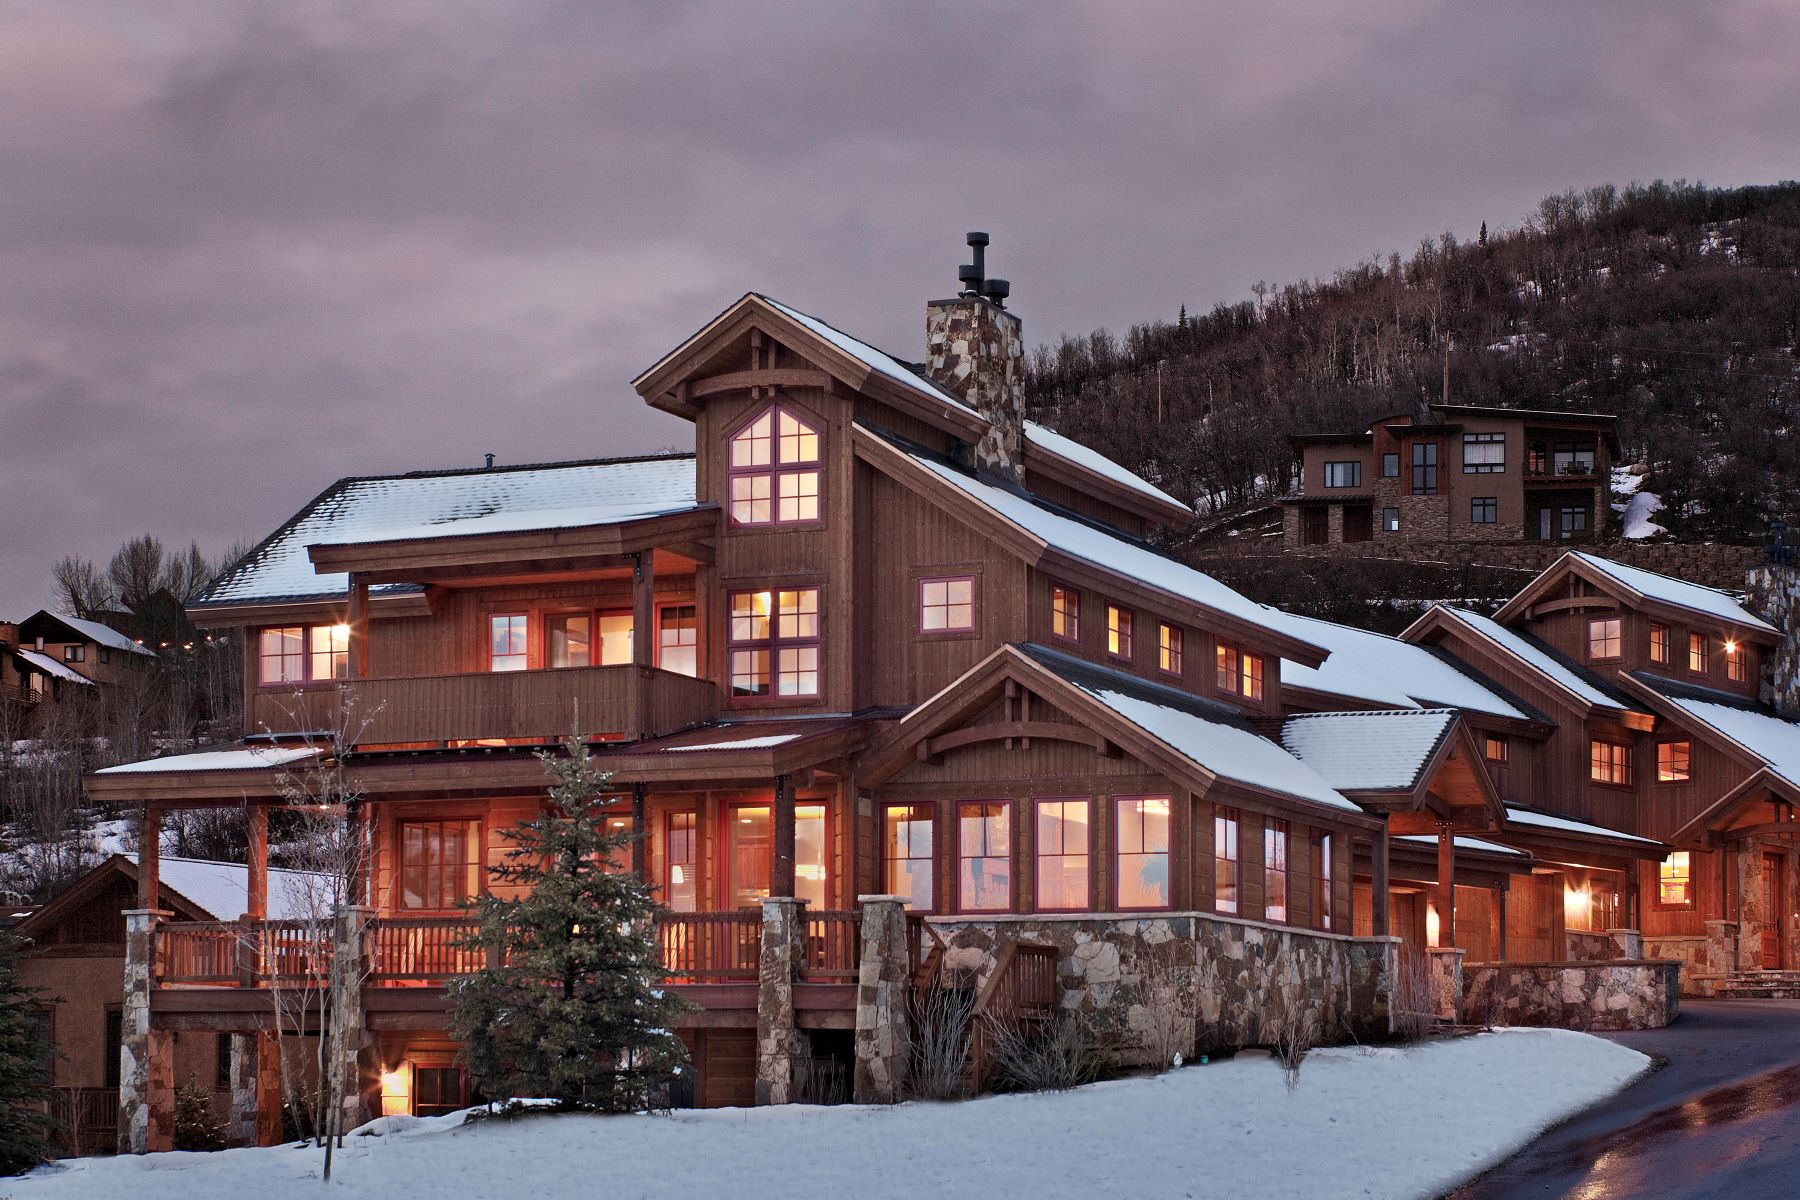 Single Family Home for Sale at Chalet Beliza, Steamboat Springs - CO 2670 Alpenglow Way Steamboat Springs, Colorado 80487 United States